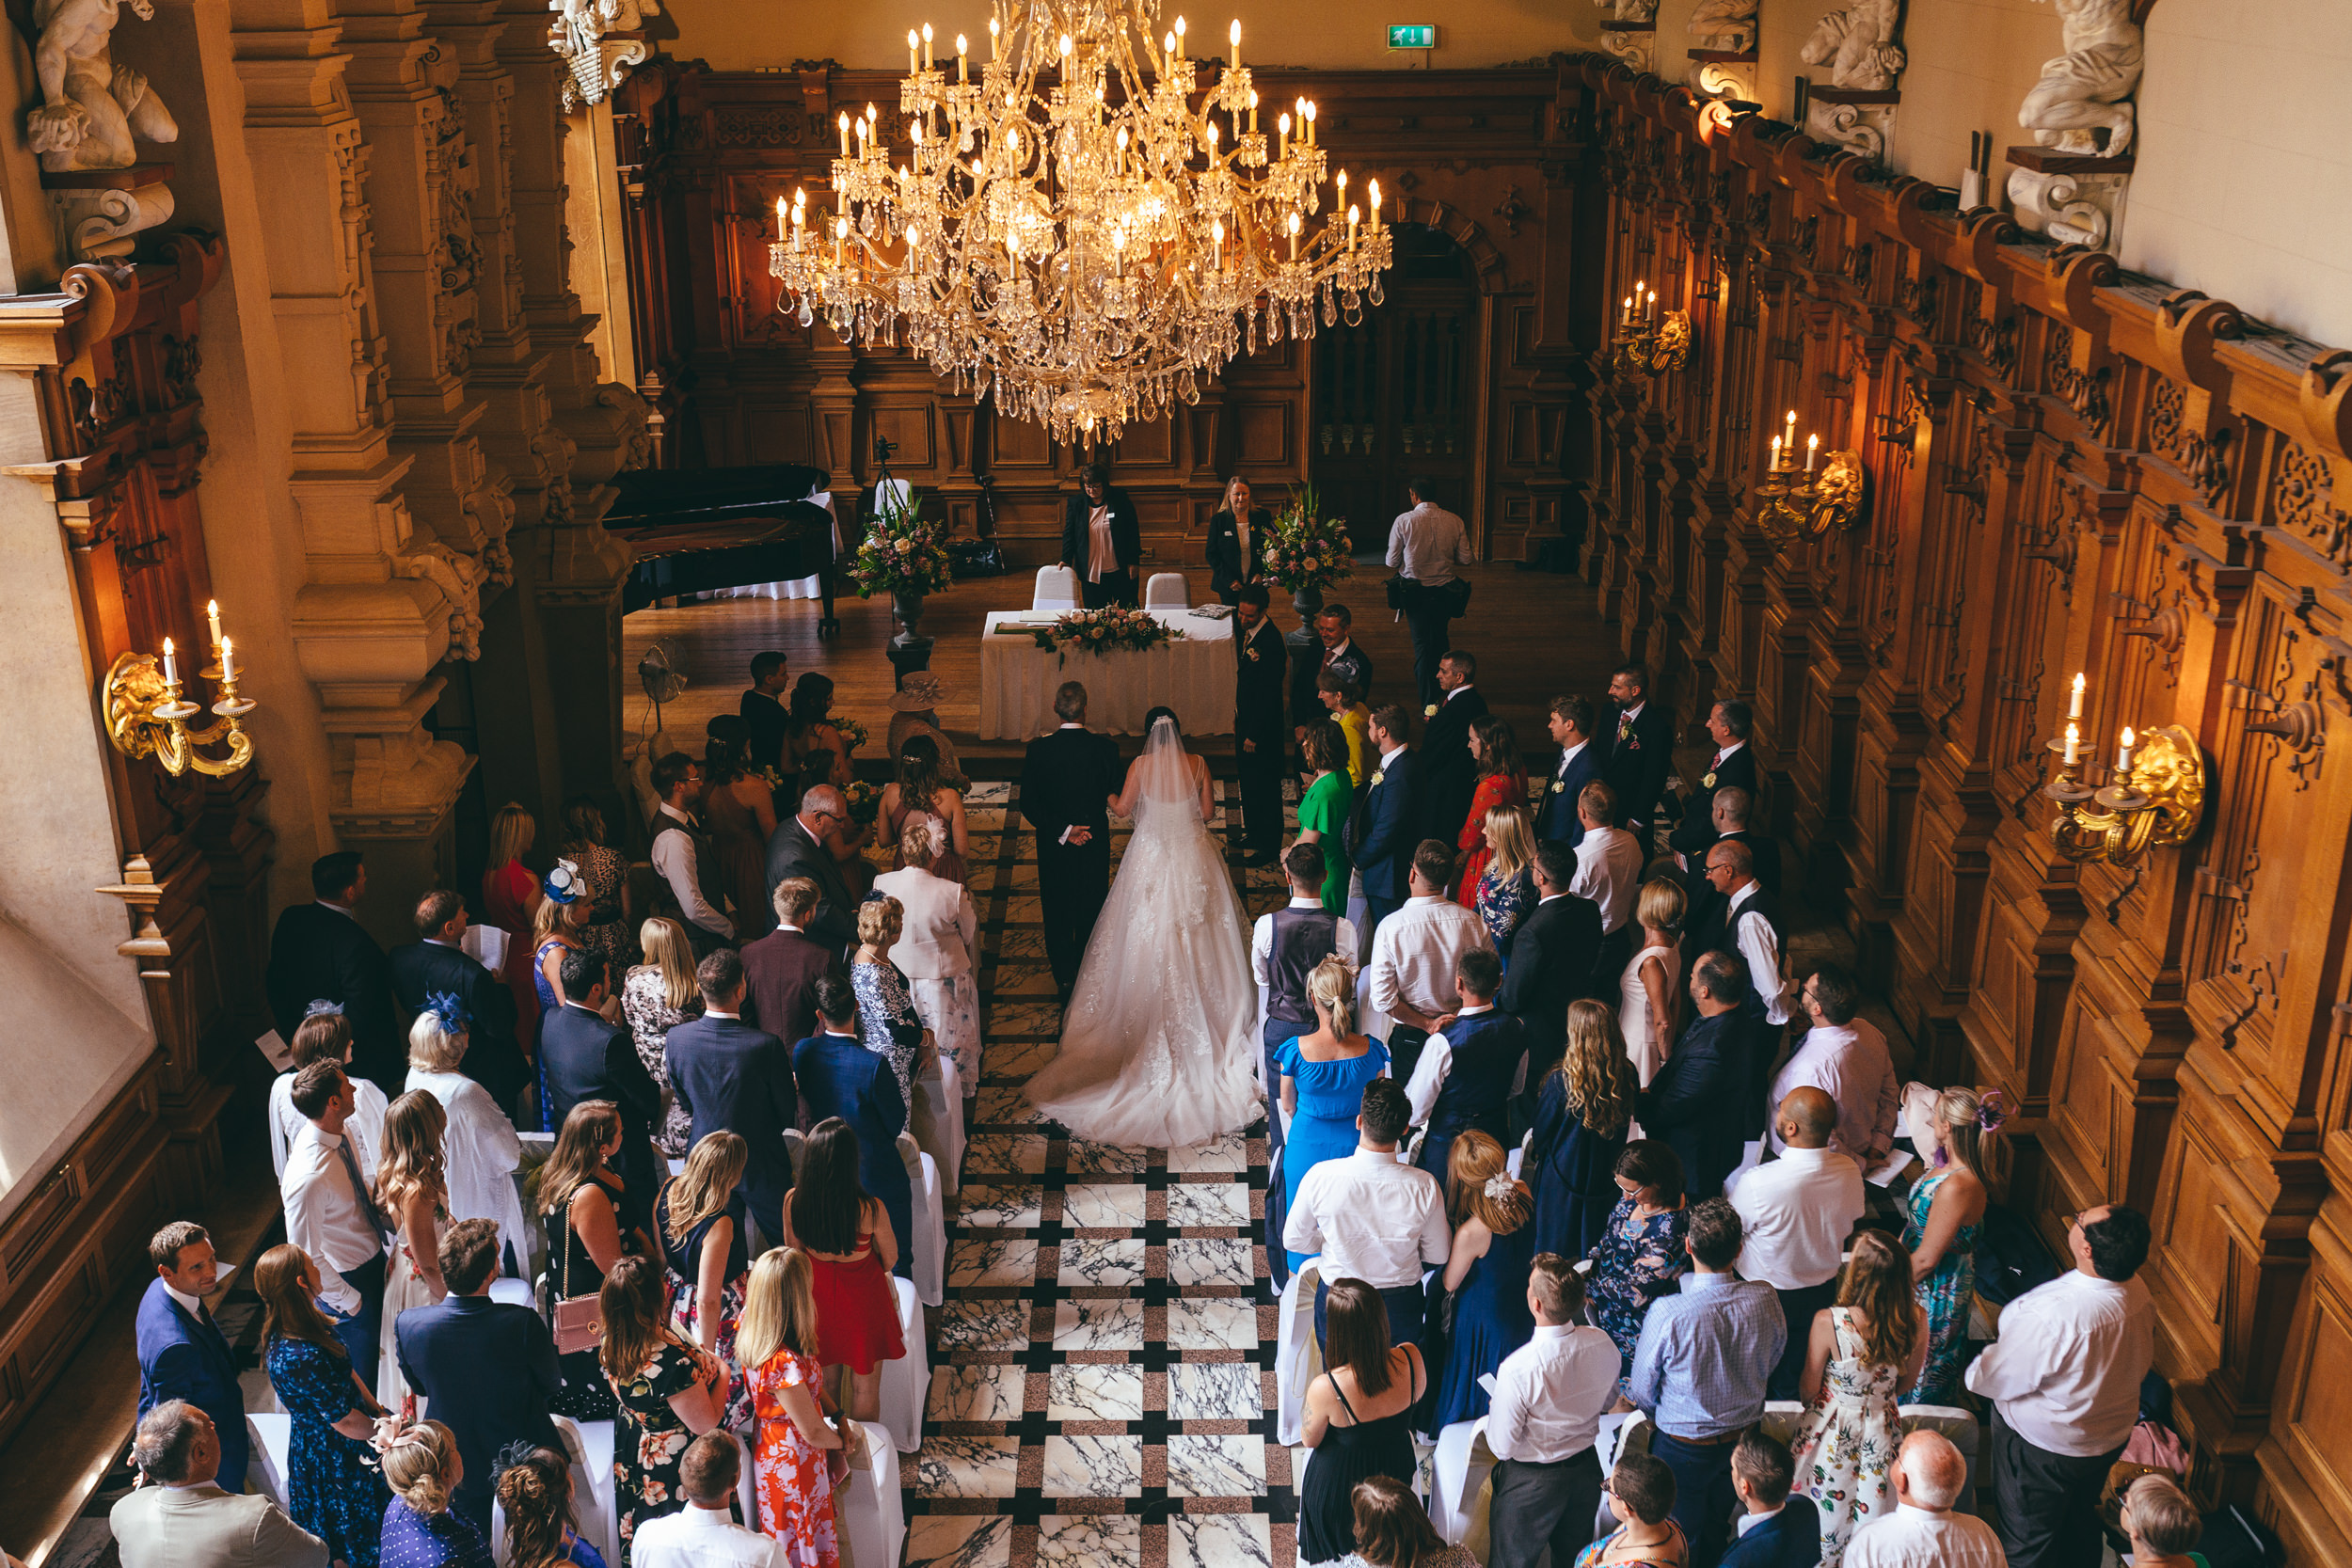 Wedding ceremony view from the balcony at Harlaxton Manor